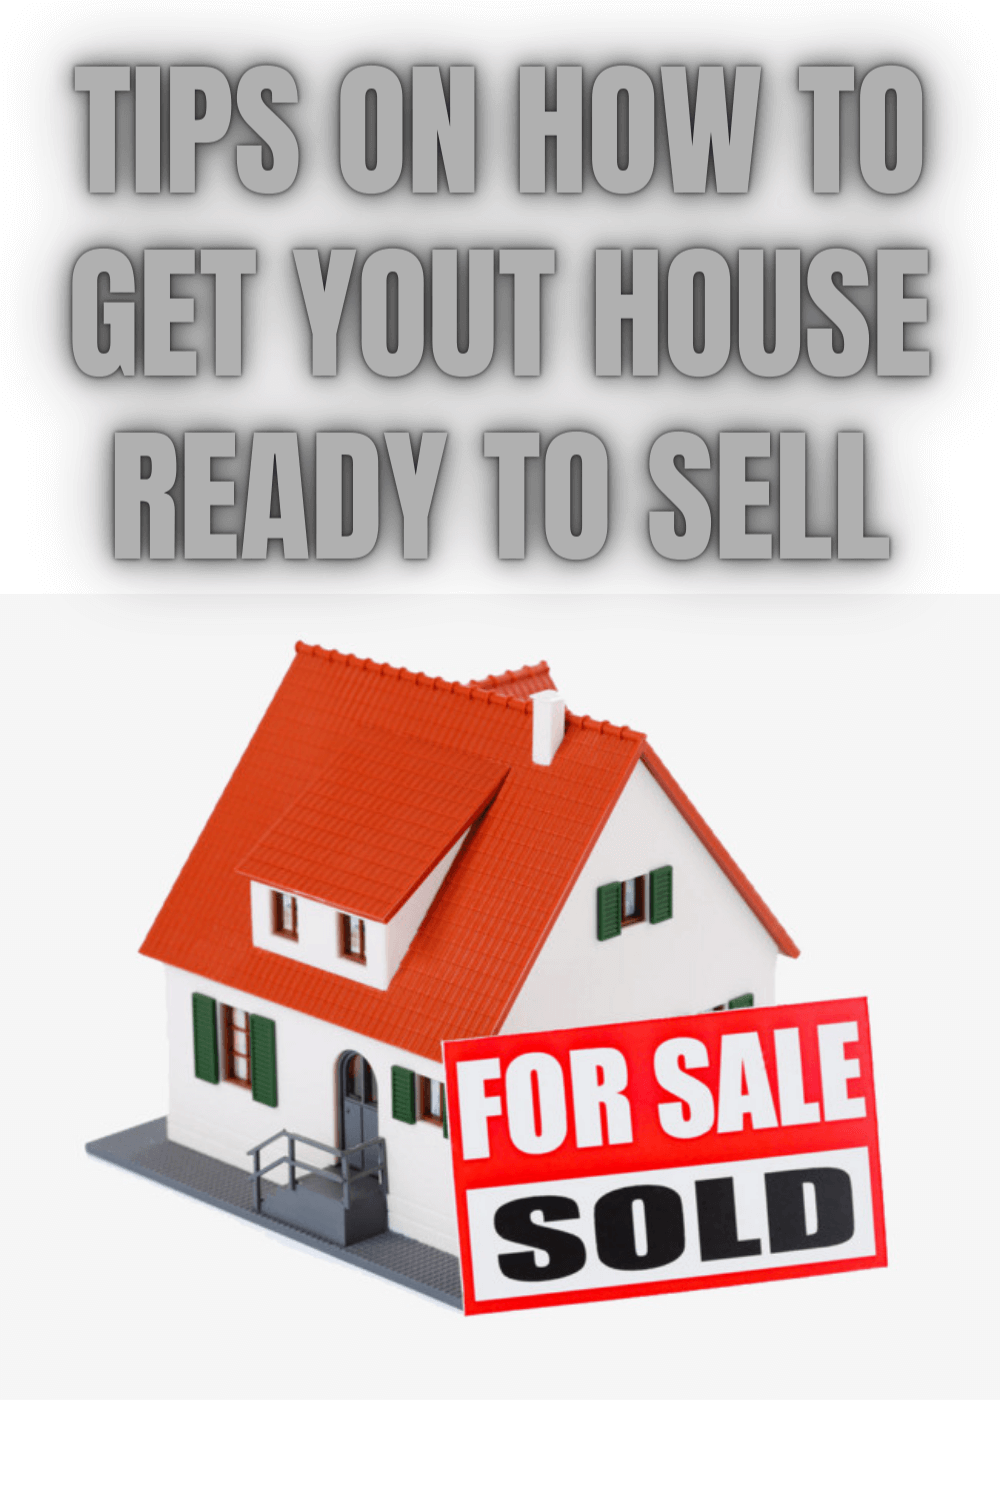 TIPS ON HOW TO GET YOUT HOUSE READY TO SELL